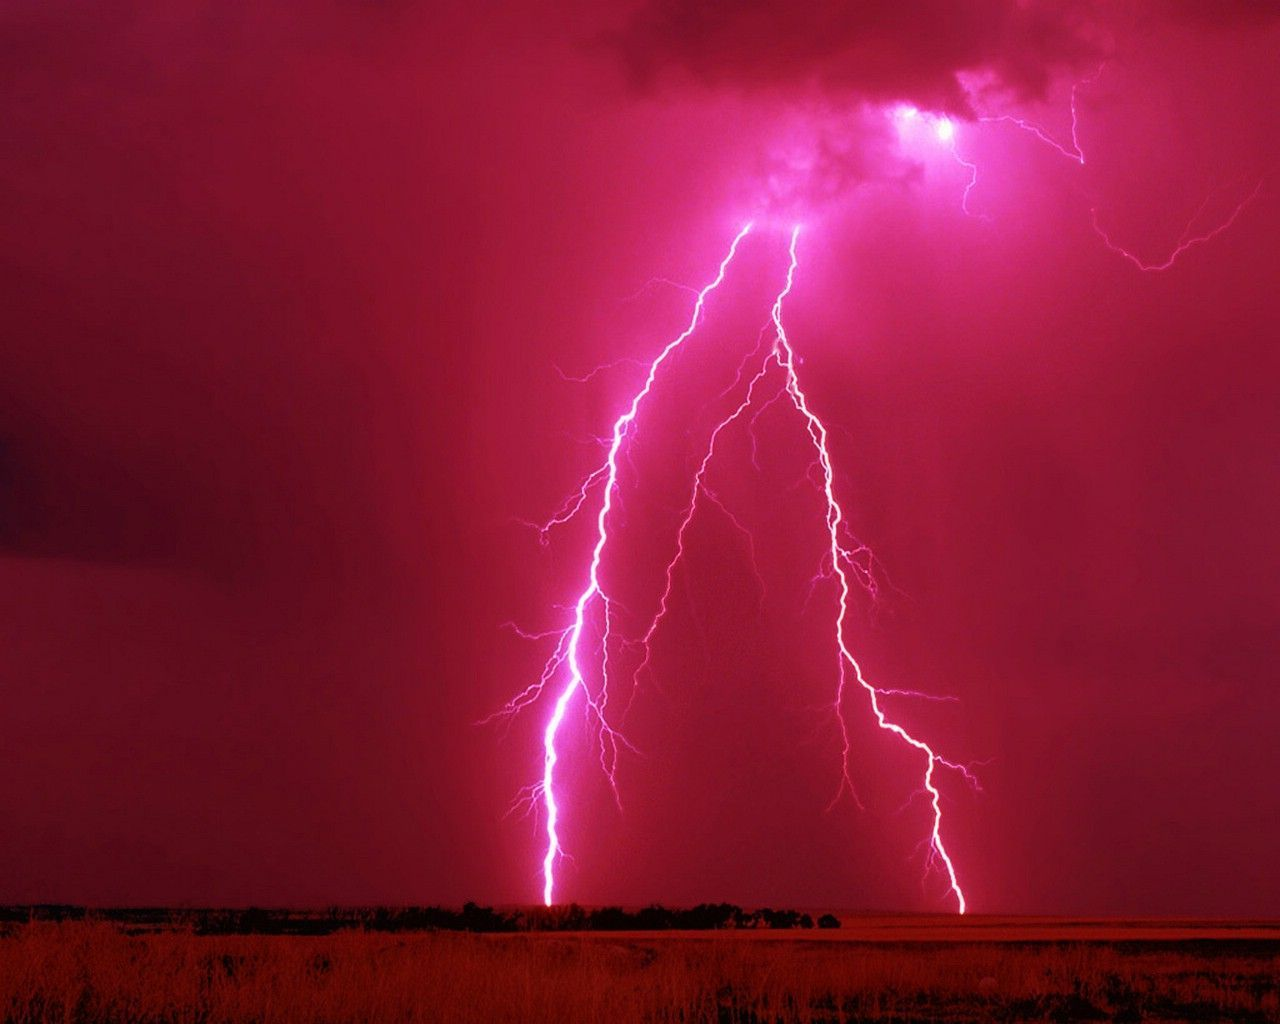 http://www.documentingreality.com/forum/attachments/f181/221275d1288542432-lightning-beautifully-amazing-lightning-20strike.jpg